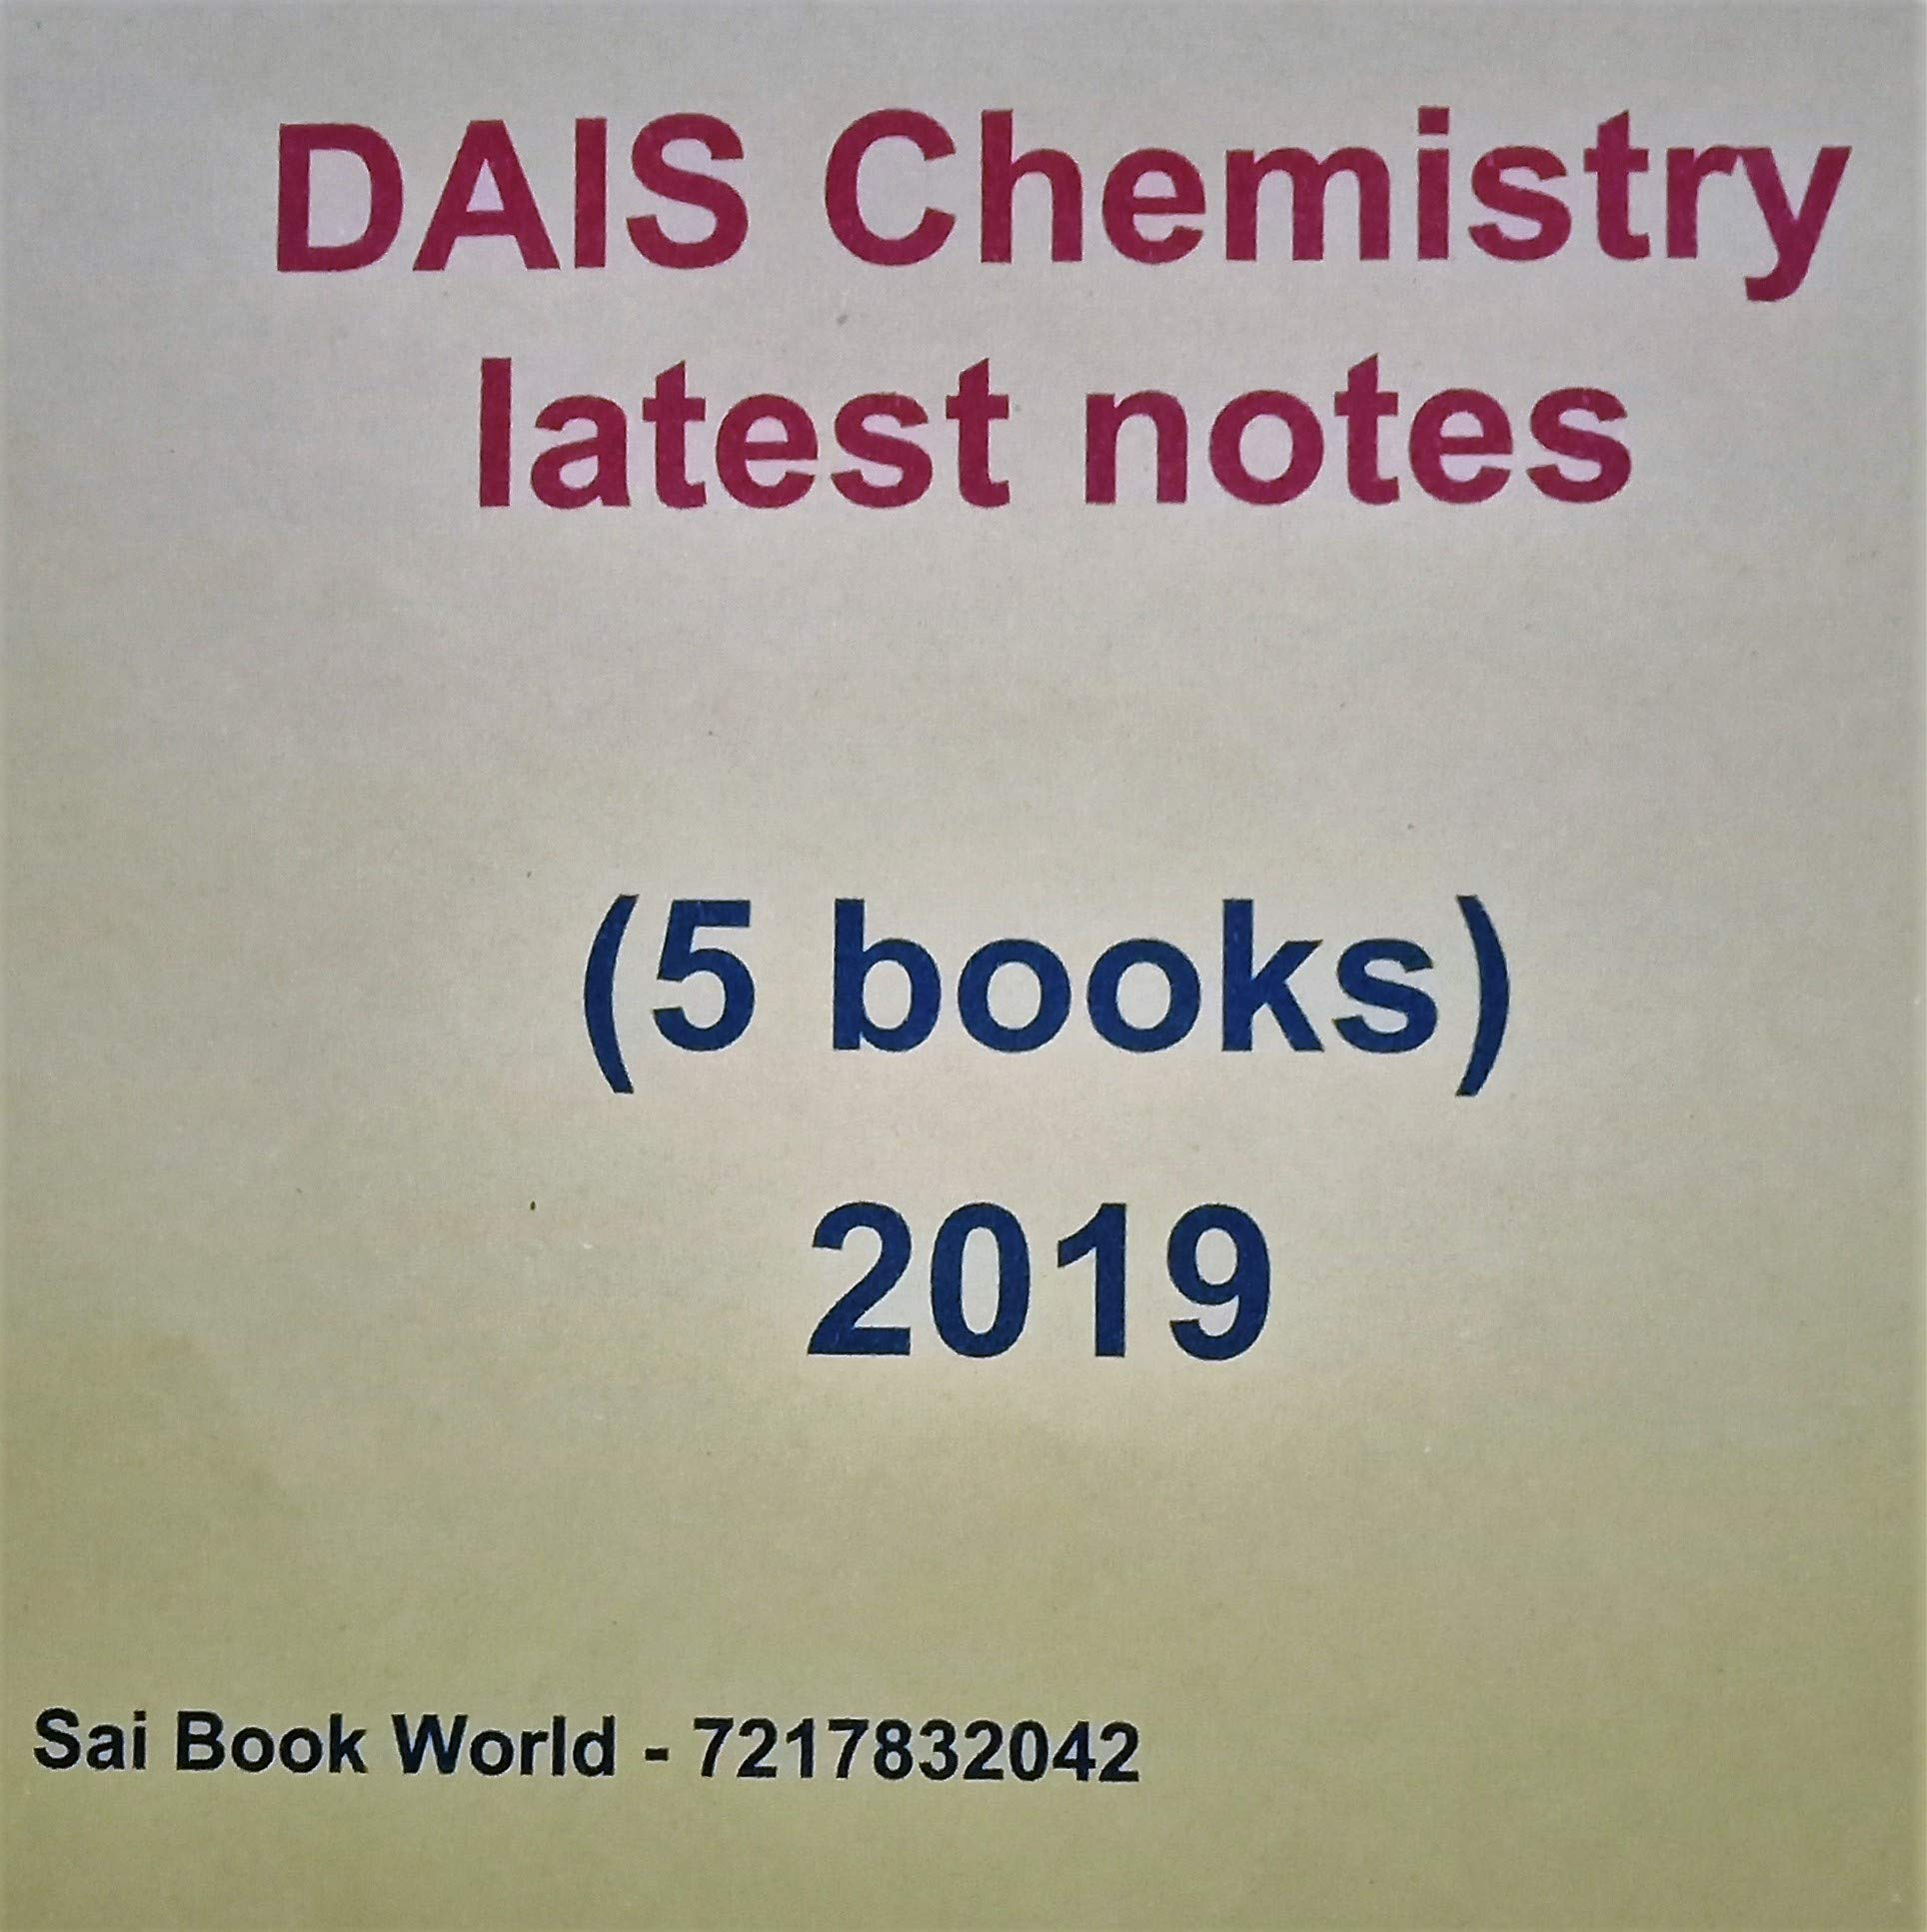 Amazon in: Buy DAIS CHEMISTRY LATEST NOTES - (5 BOOKS) 2019 Book